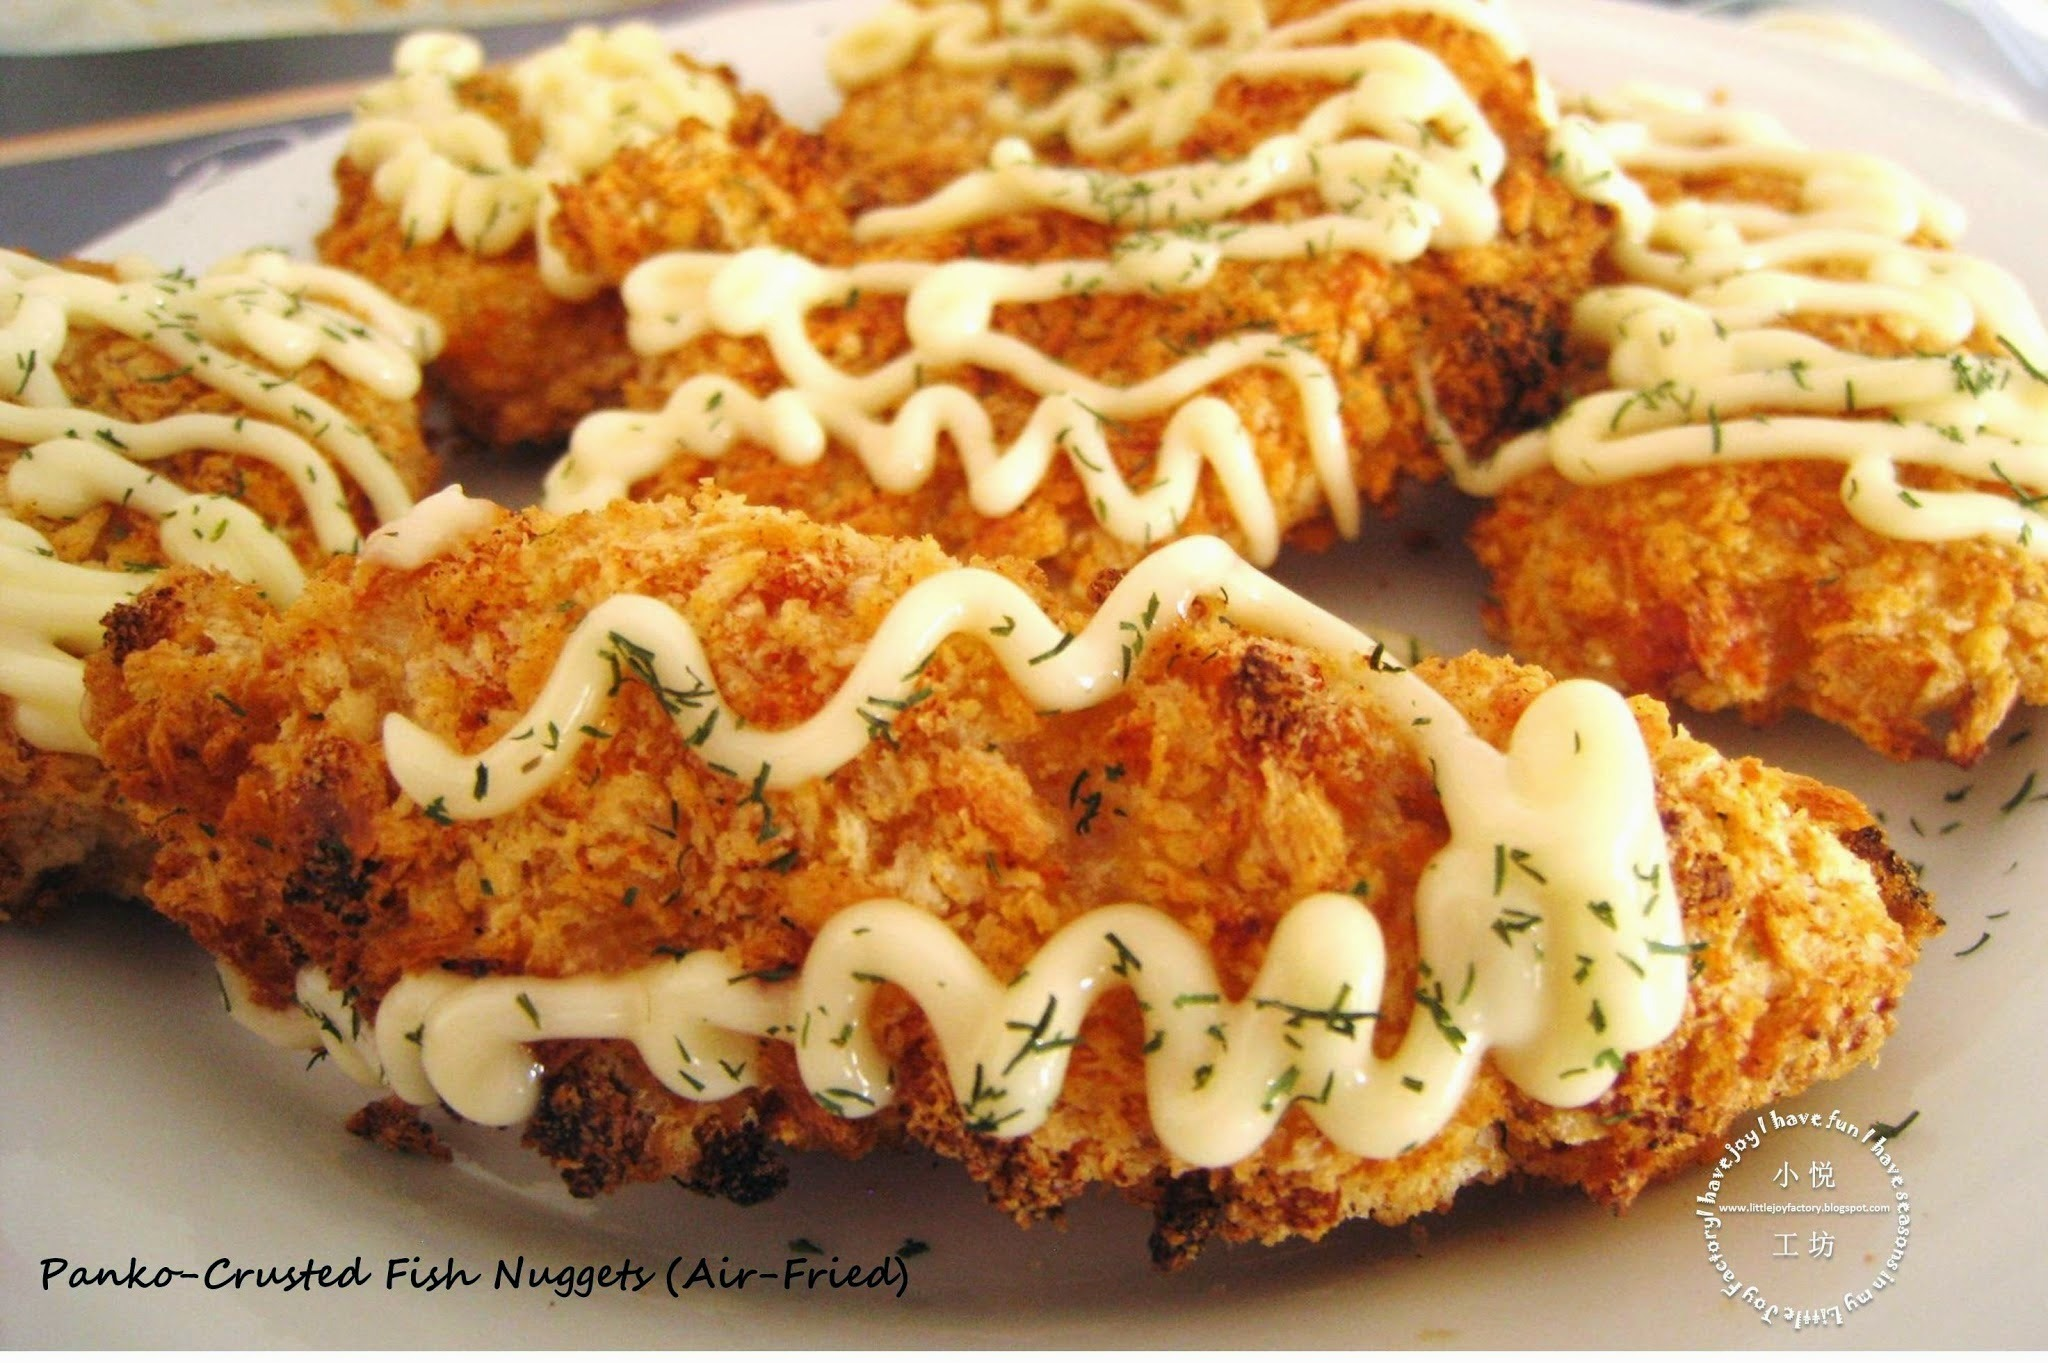 Air-Fried Panko-Crusted Fish Nuggets with Dill Mayonnaise 空气锅炸香酥面包鱼